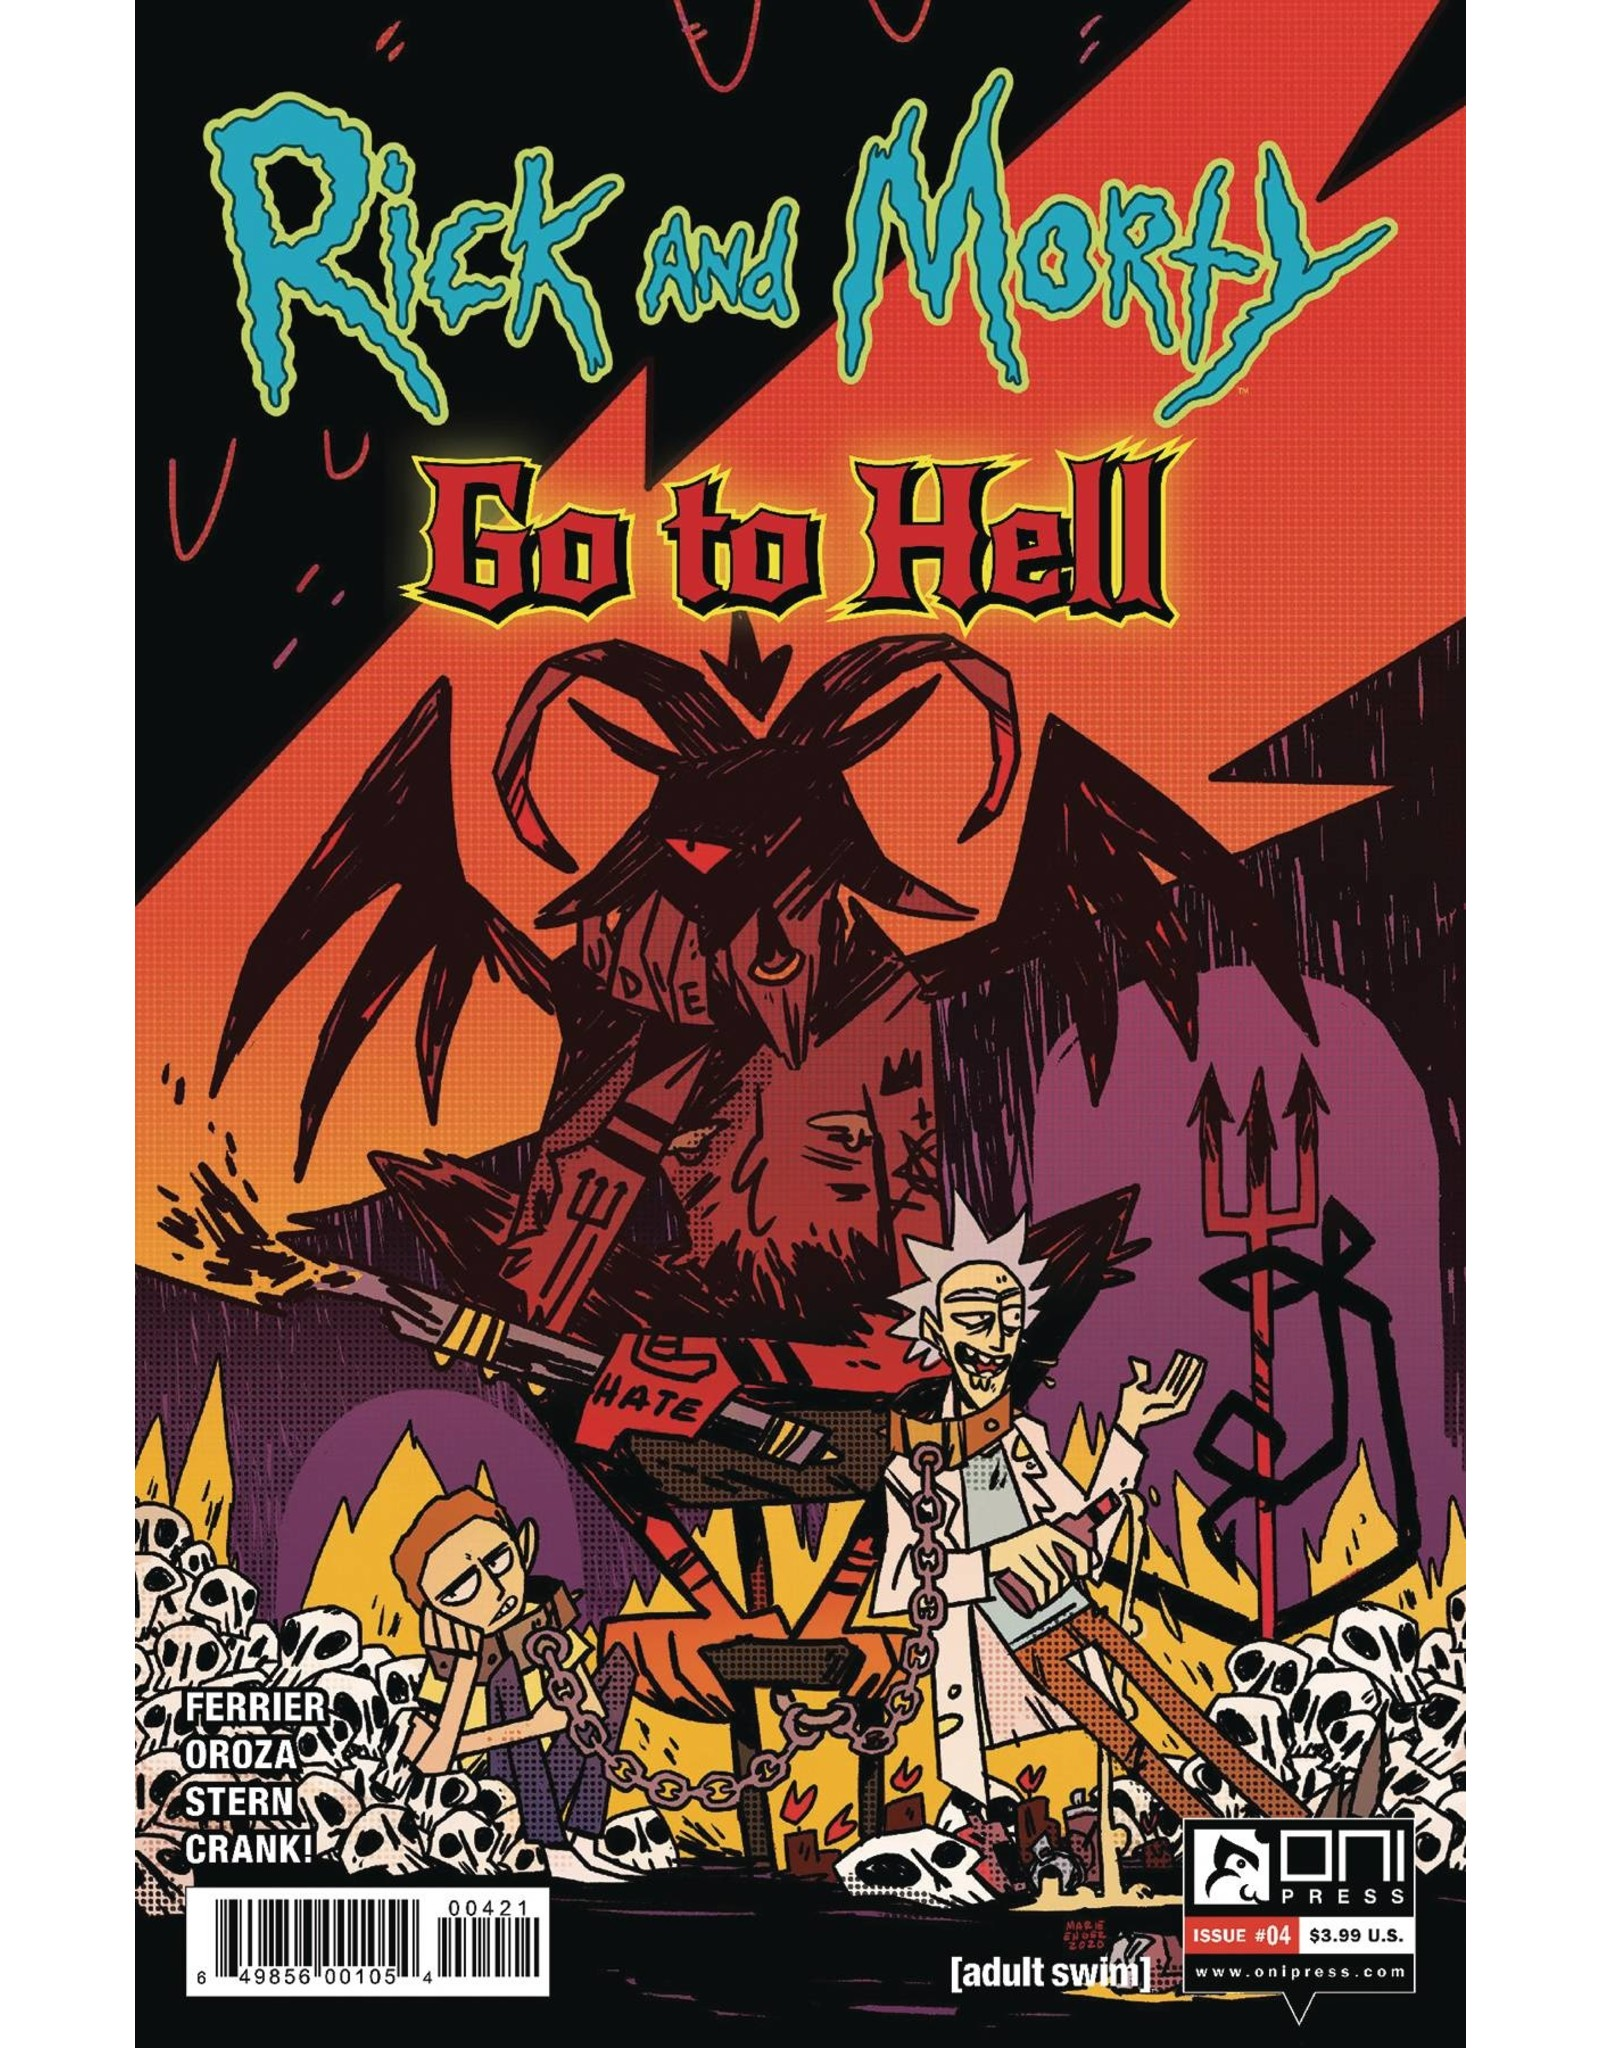 ONI PRESS INC. RICK AND MORTY GO TO HELL #4 CVR B ENGER